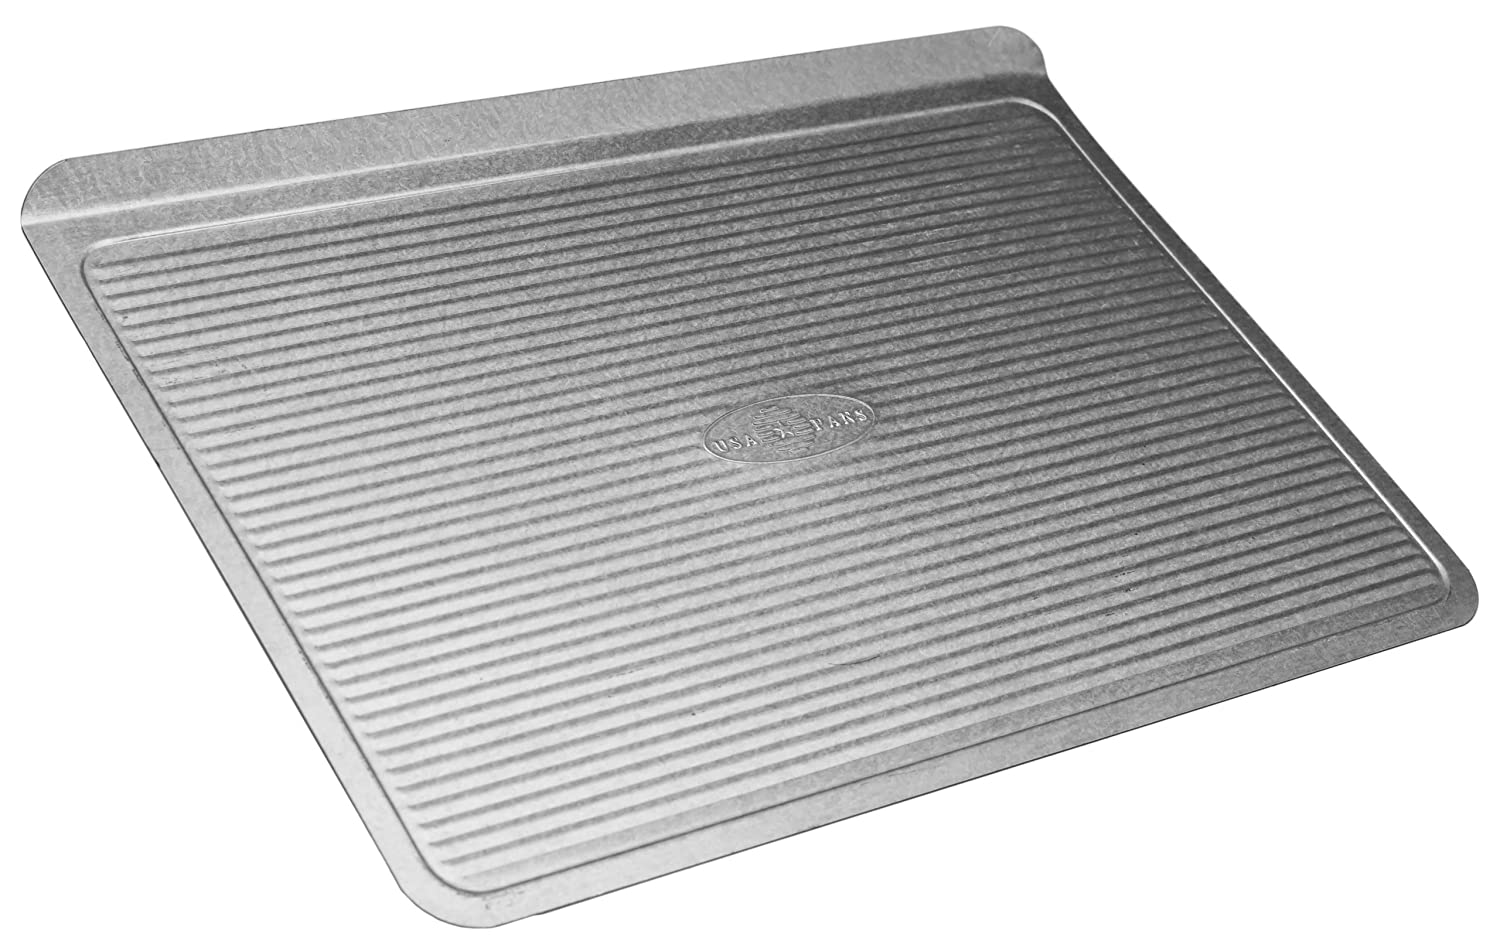 USA Pan Warp Resistant Non-Stick Aluminized Steel Bakeware Cookie Sheet, Small (13-Inch-8 1/4-Inch)